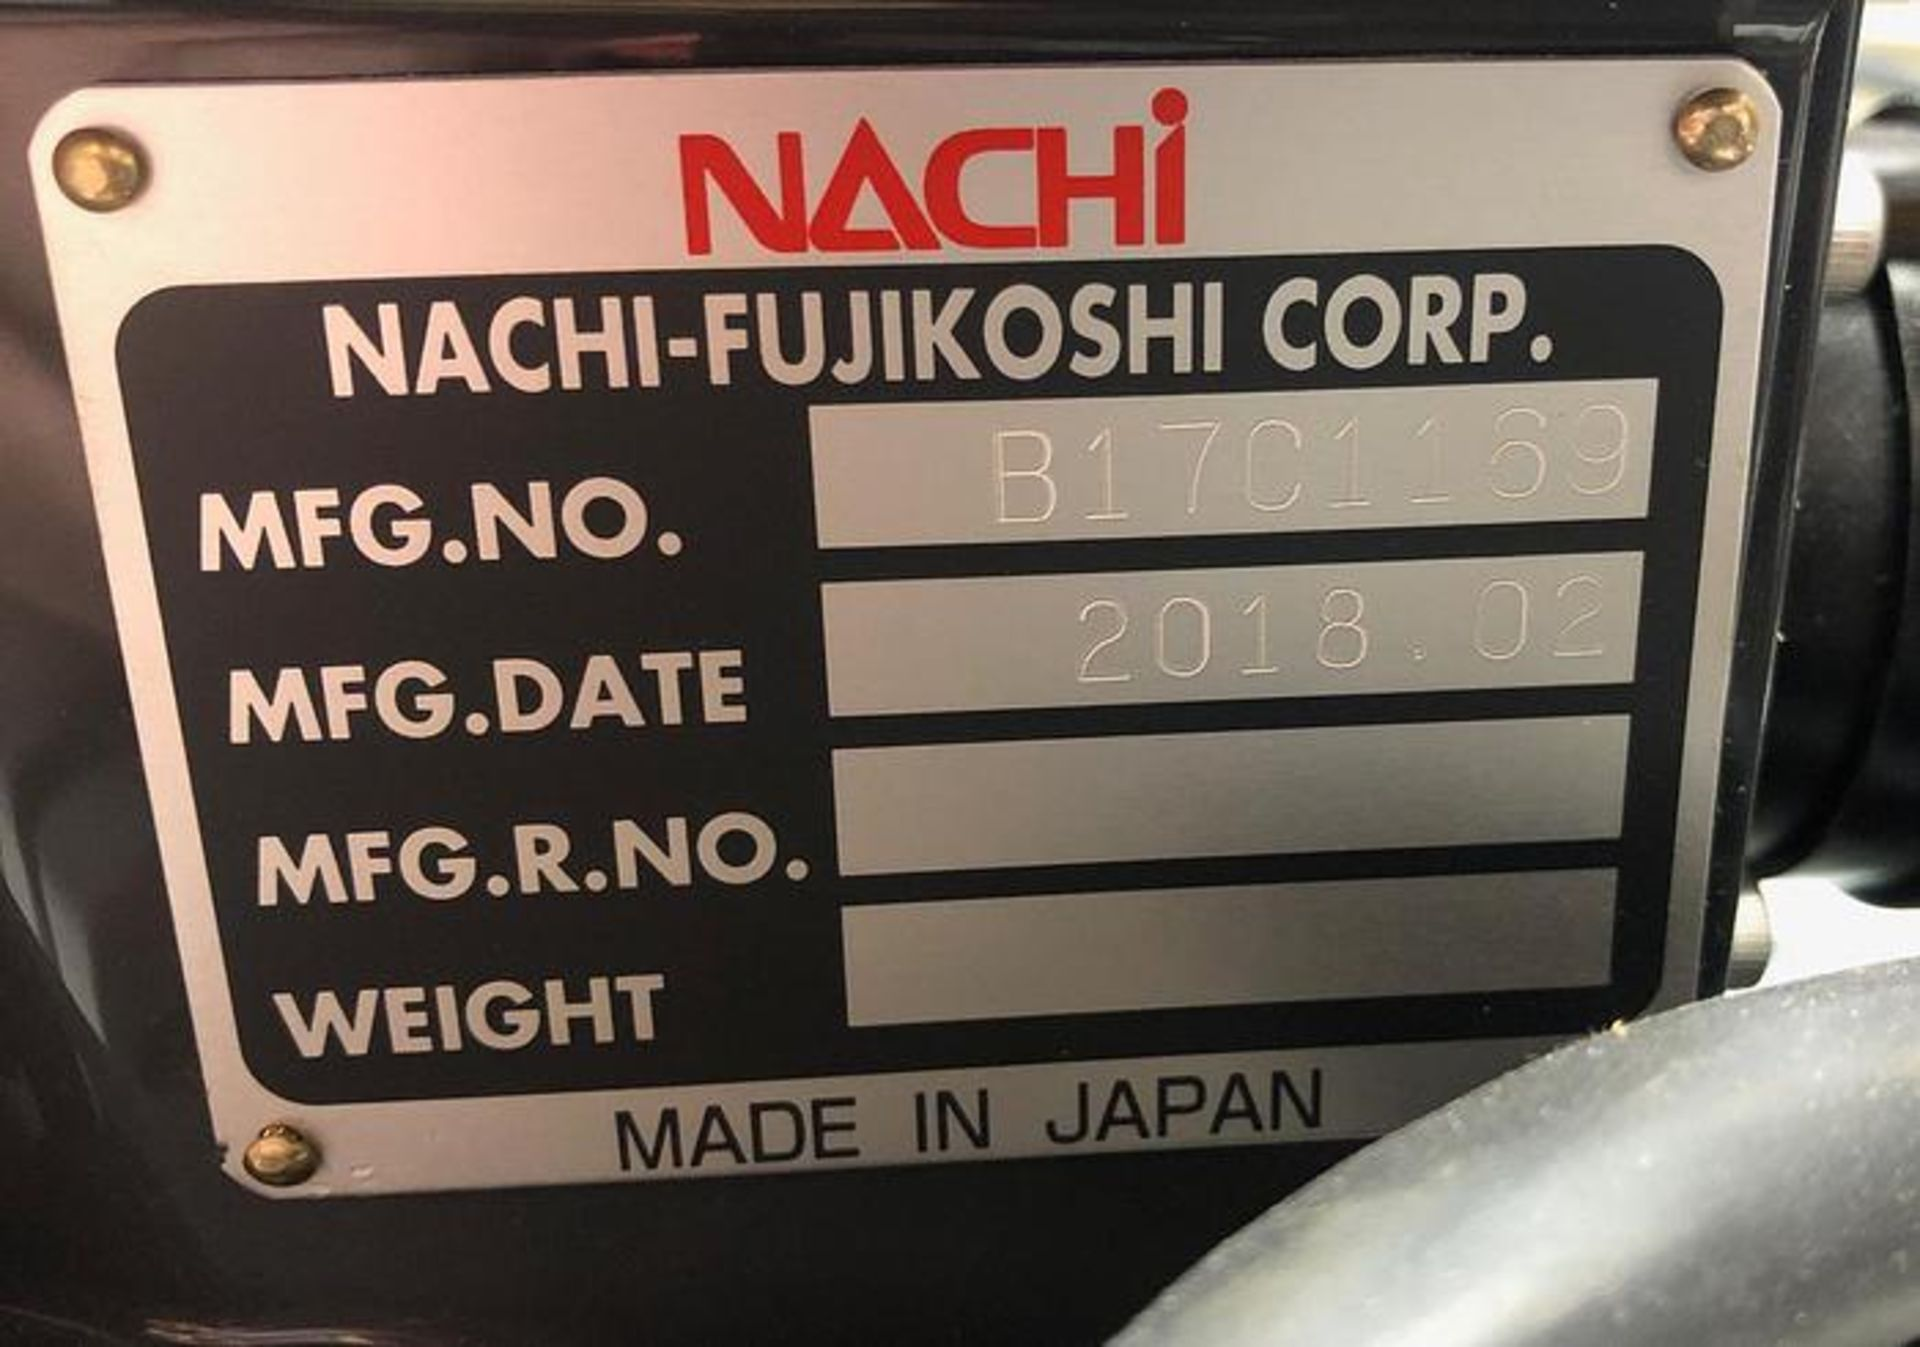 NACHI MZ04E 6 AXIS CNC COLLABRATIVE ROBOT 4 KG X 541 MM REACH NEVER USED BUILT 2018 - Image 8 of 8